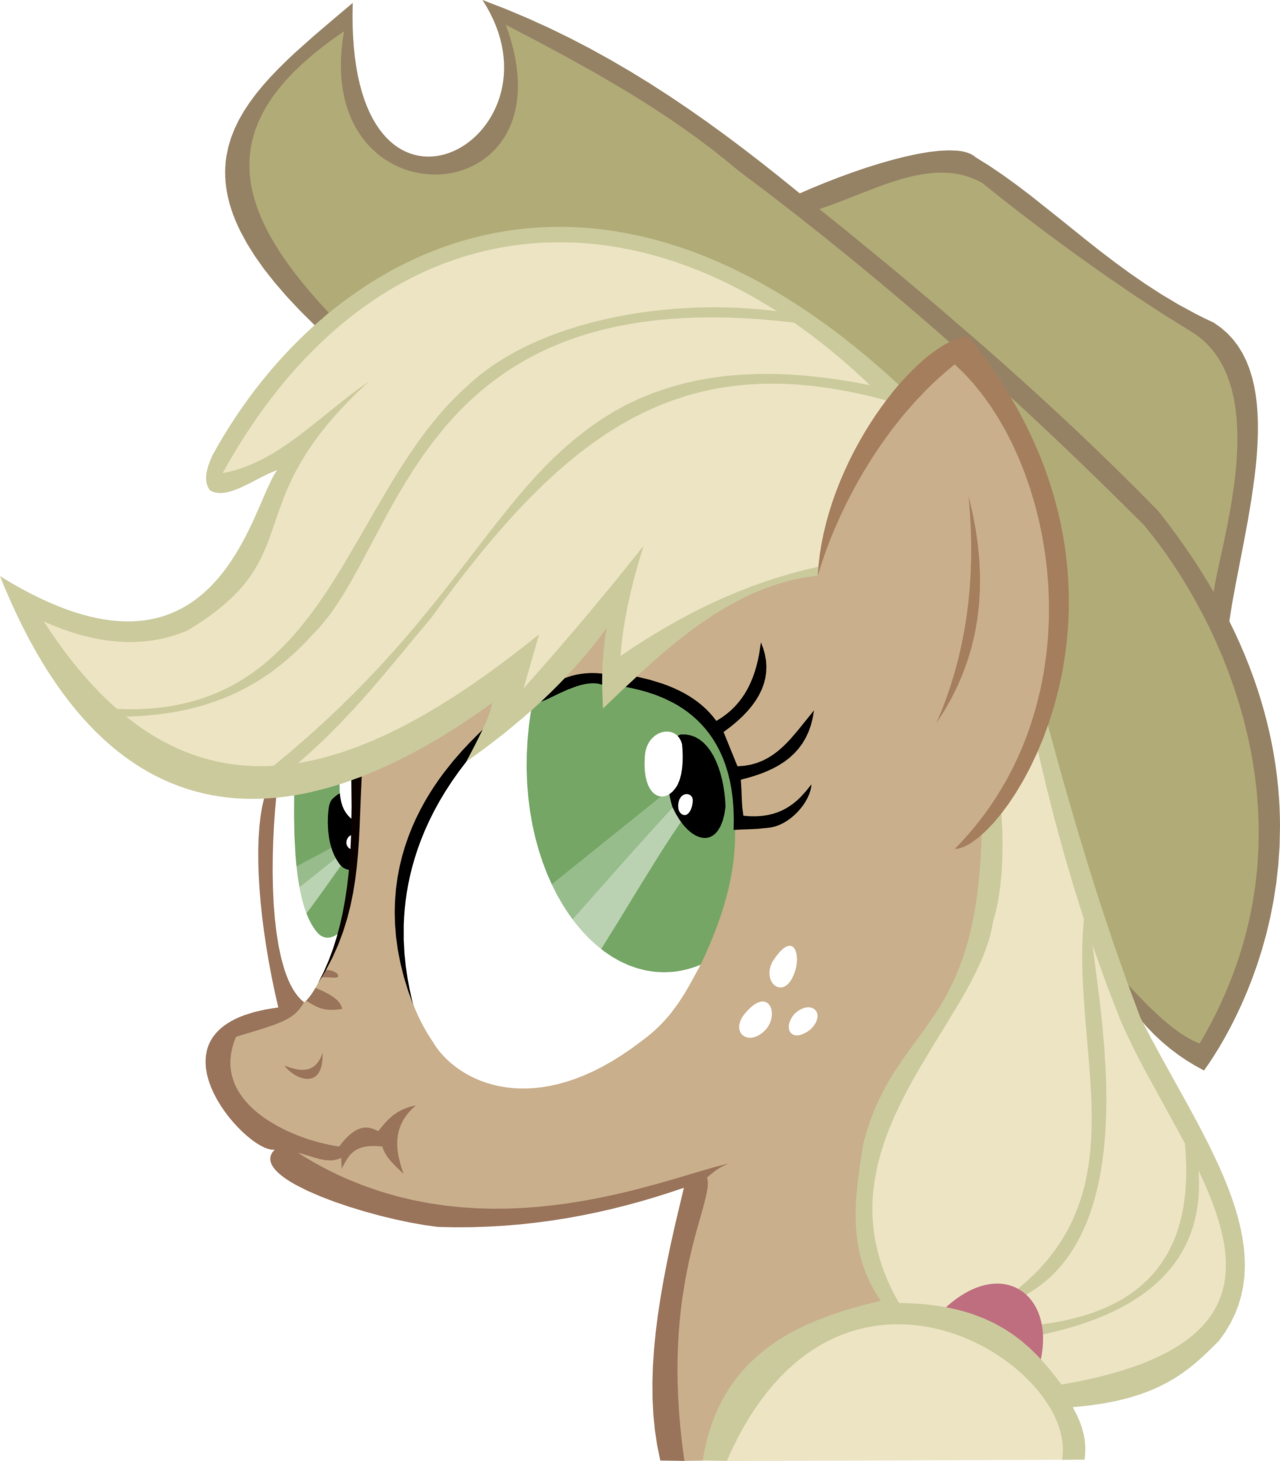 shifty apple jack by videogamesizzle-d4a